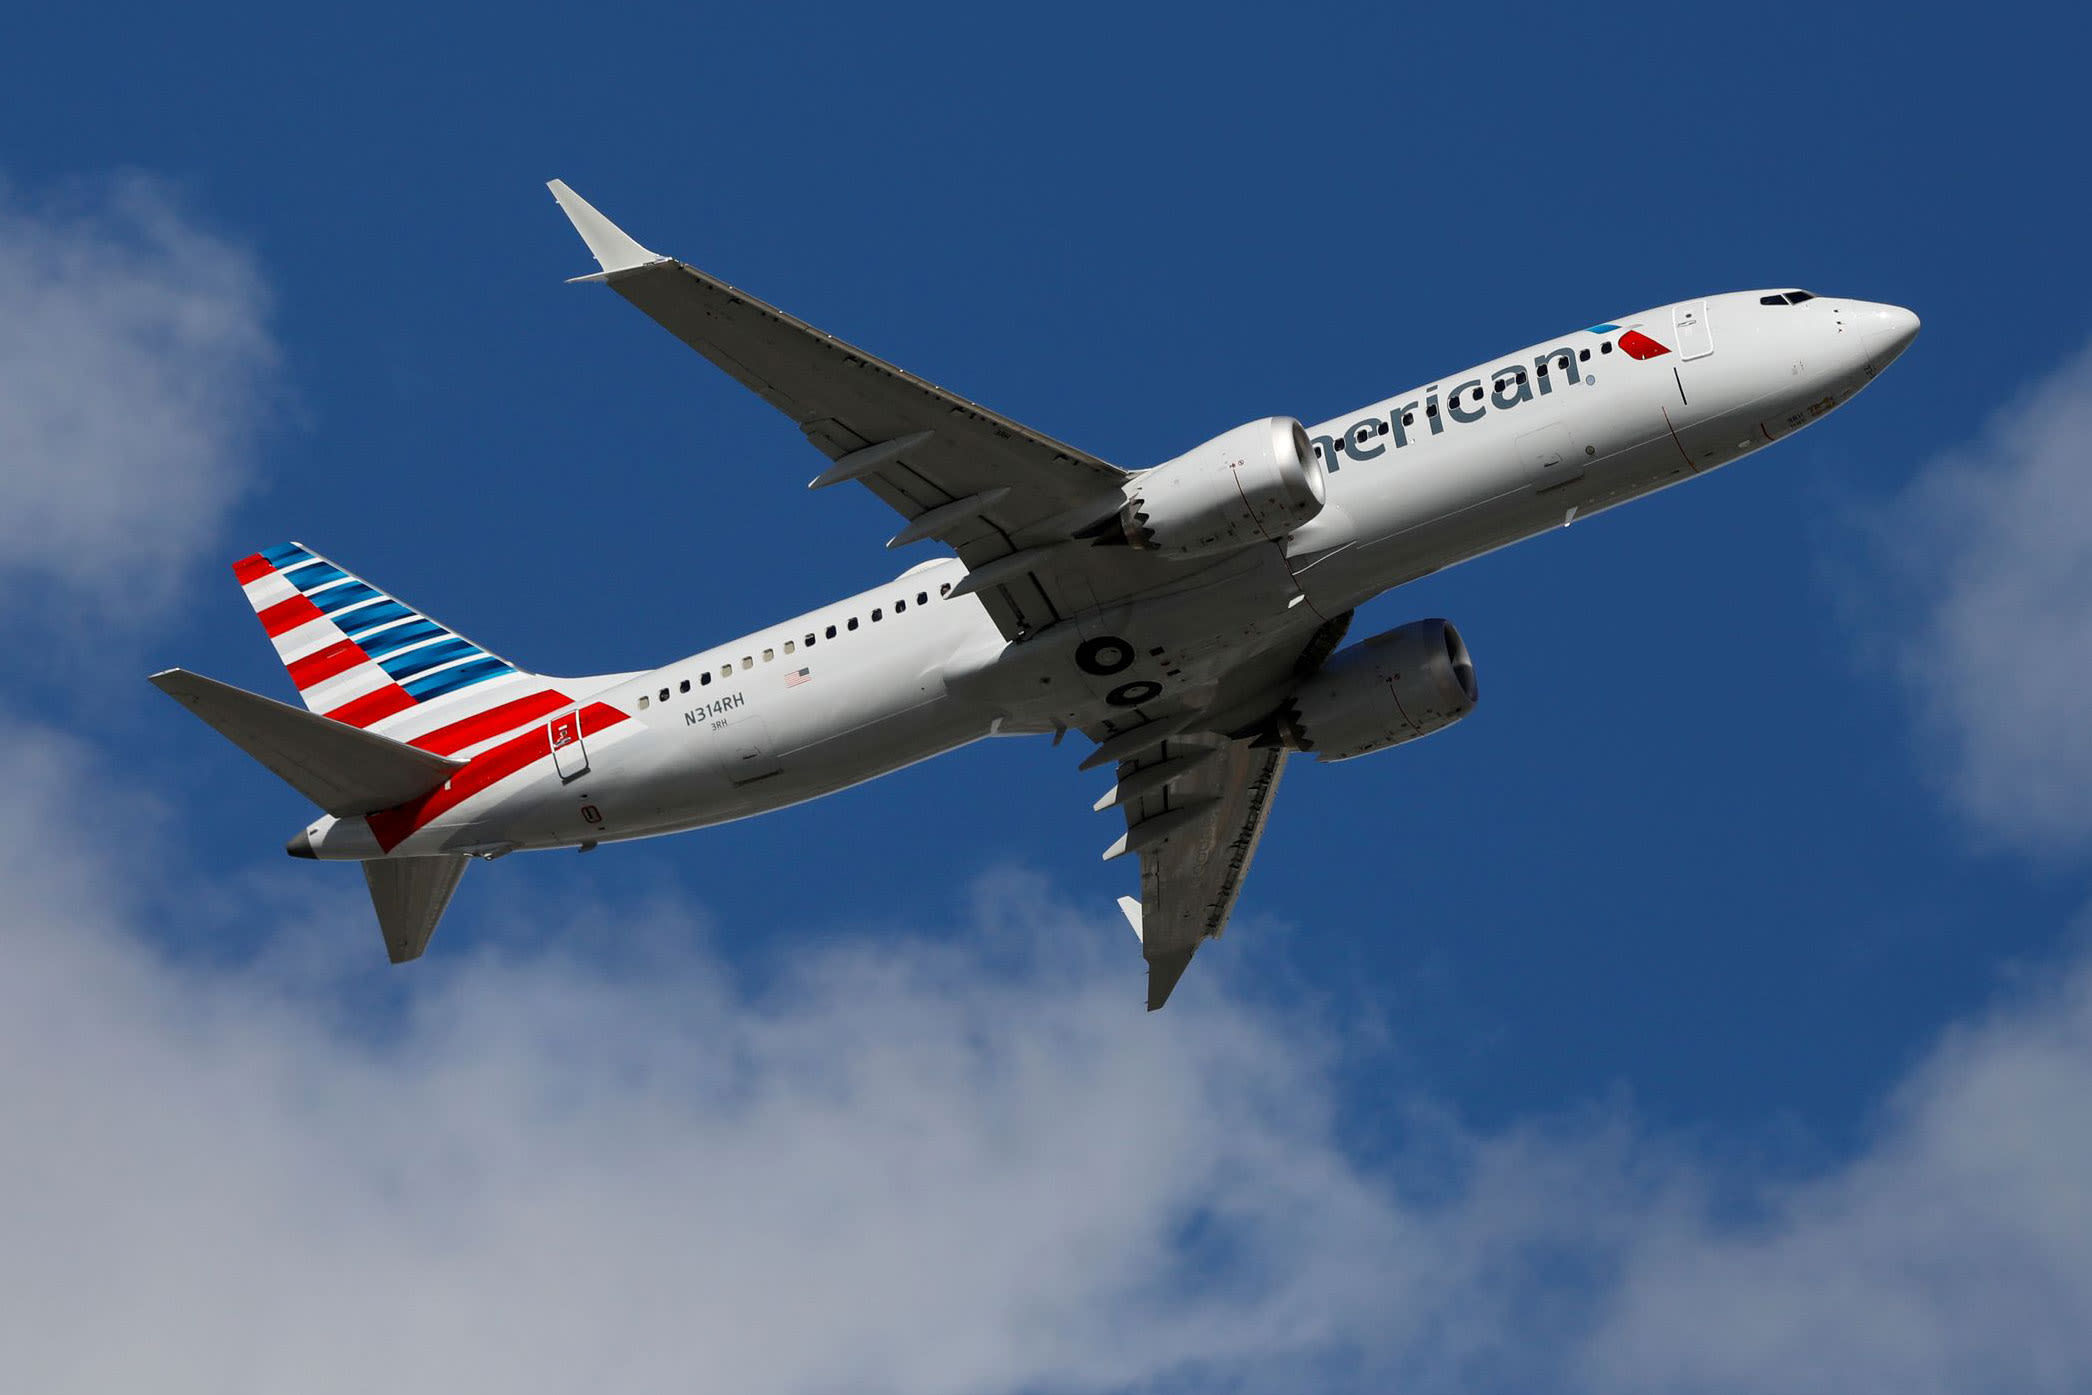 american-airlines-sees-capacity-cuts-through-february-as-covid-cases-rise